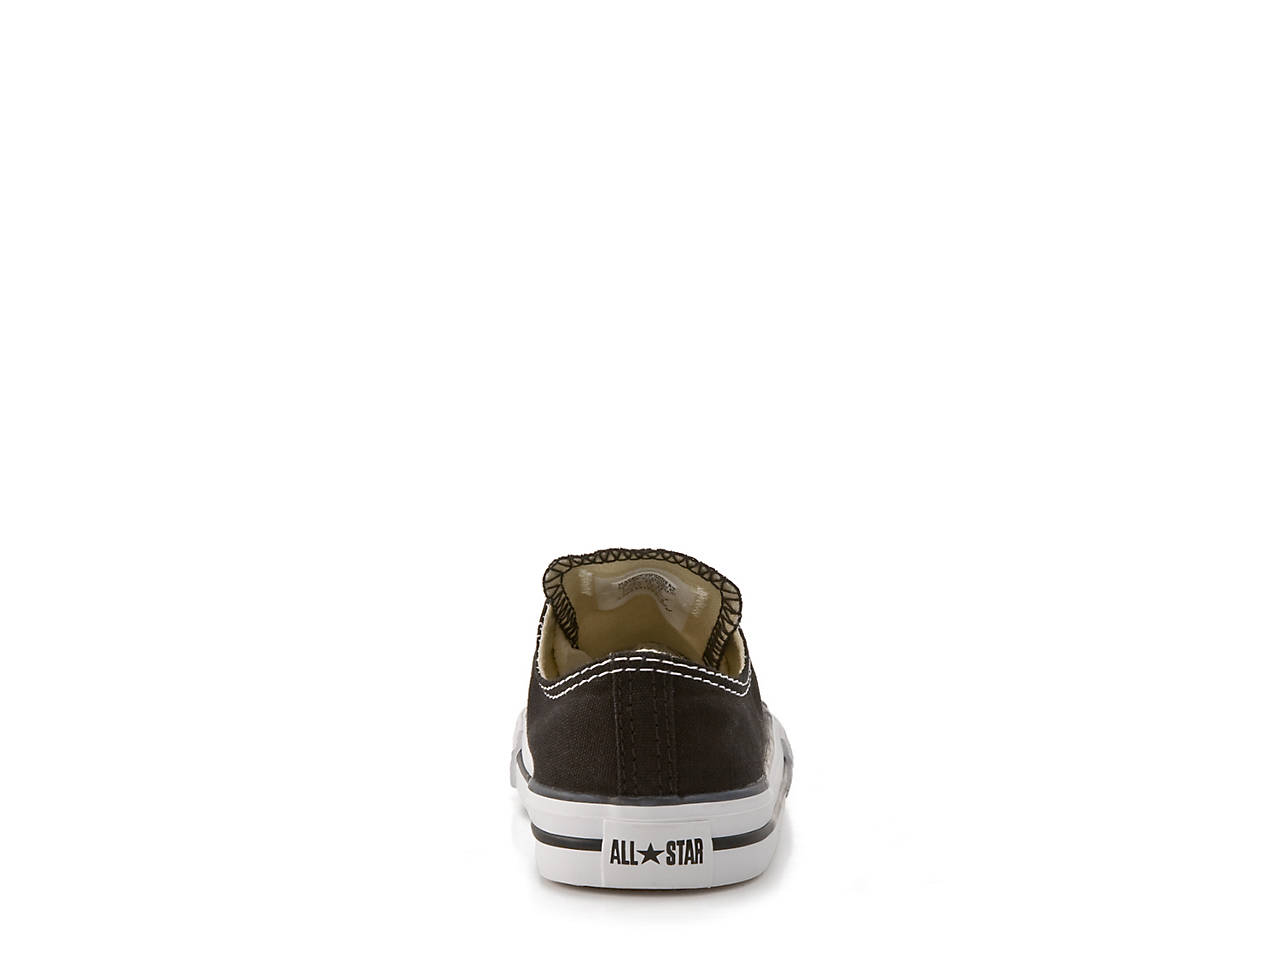 Converse chuck taylor all star infant toddler sneaker kids shoes dsw previous next nvjuhfo Choice Image